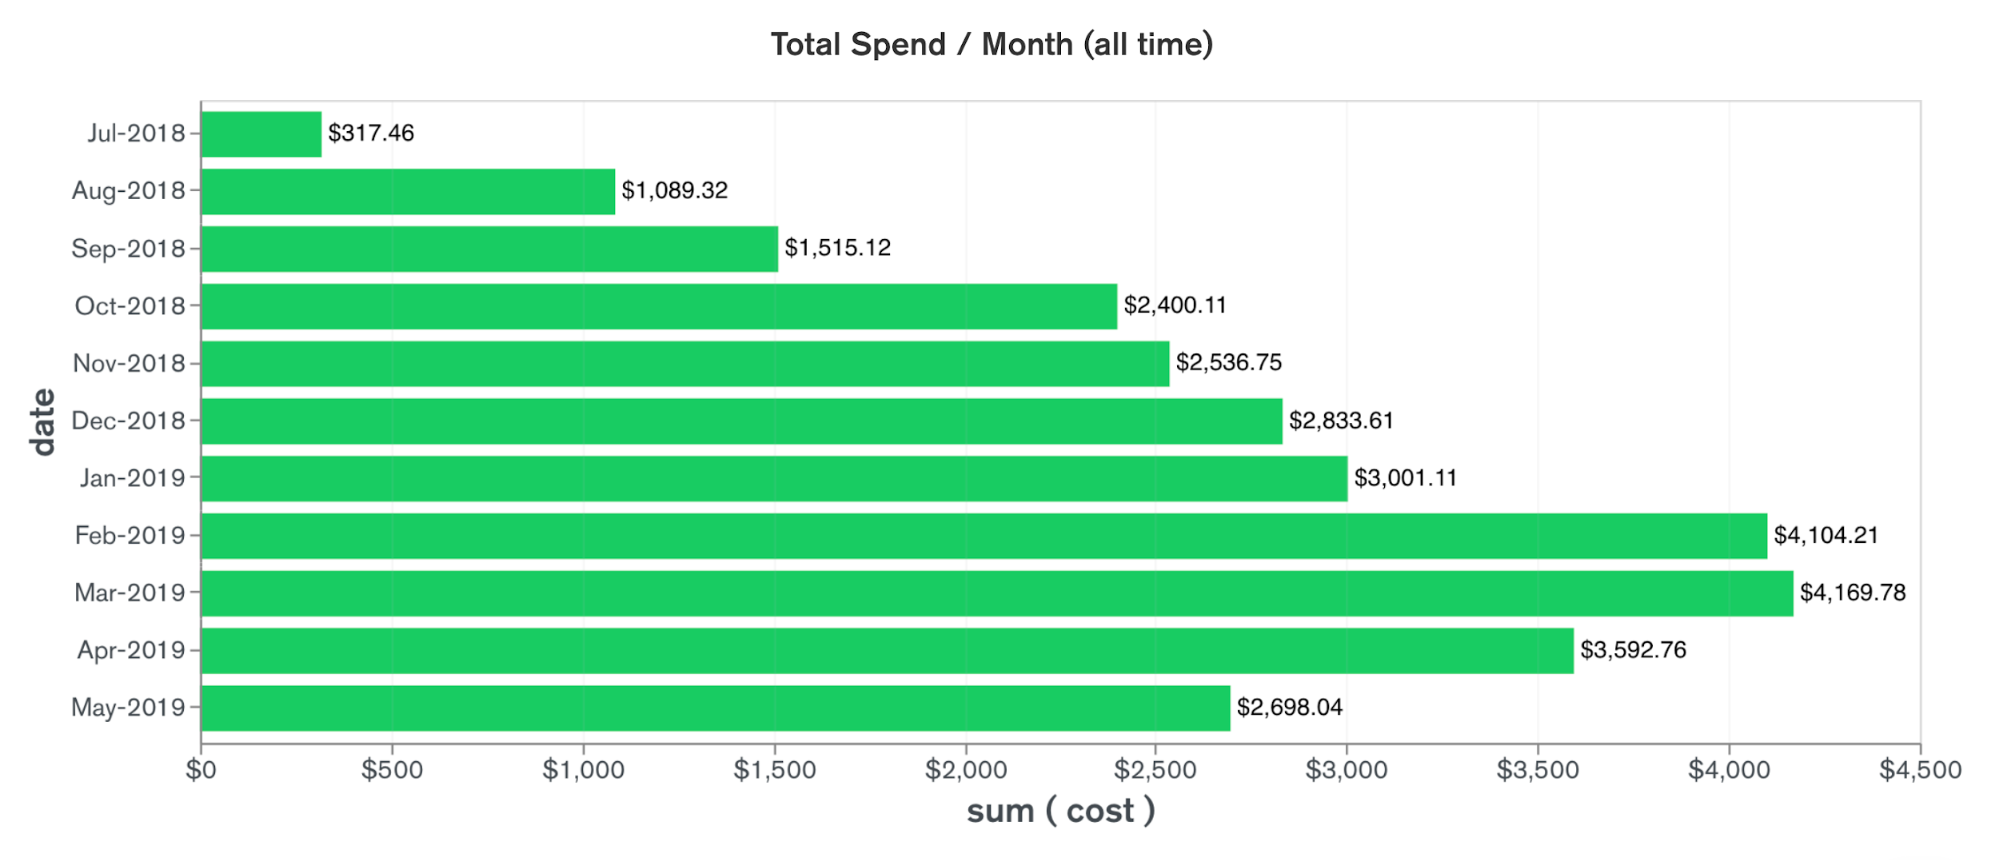 Total Spend/Month All Time